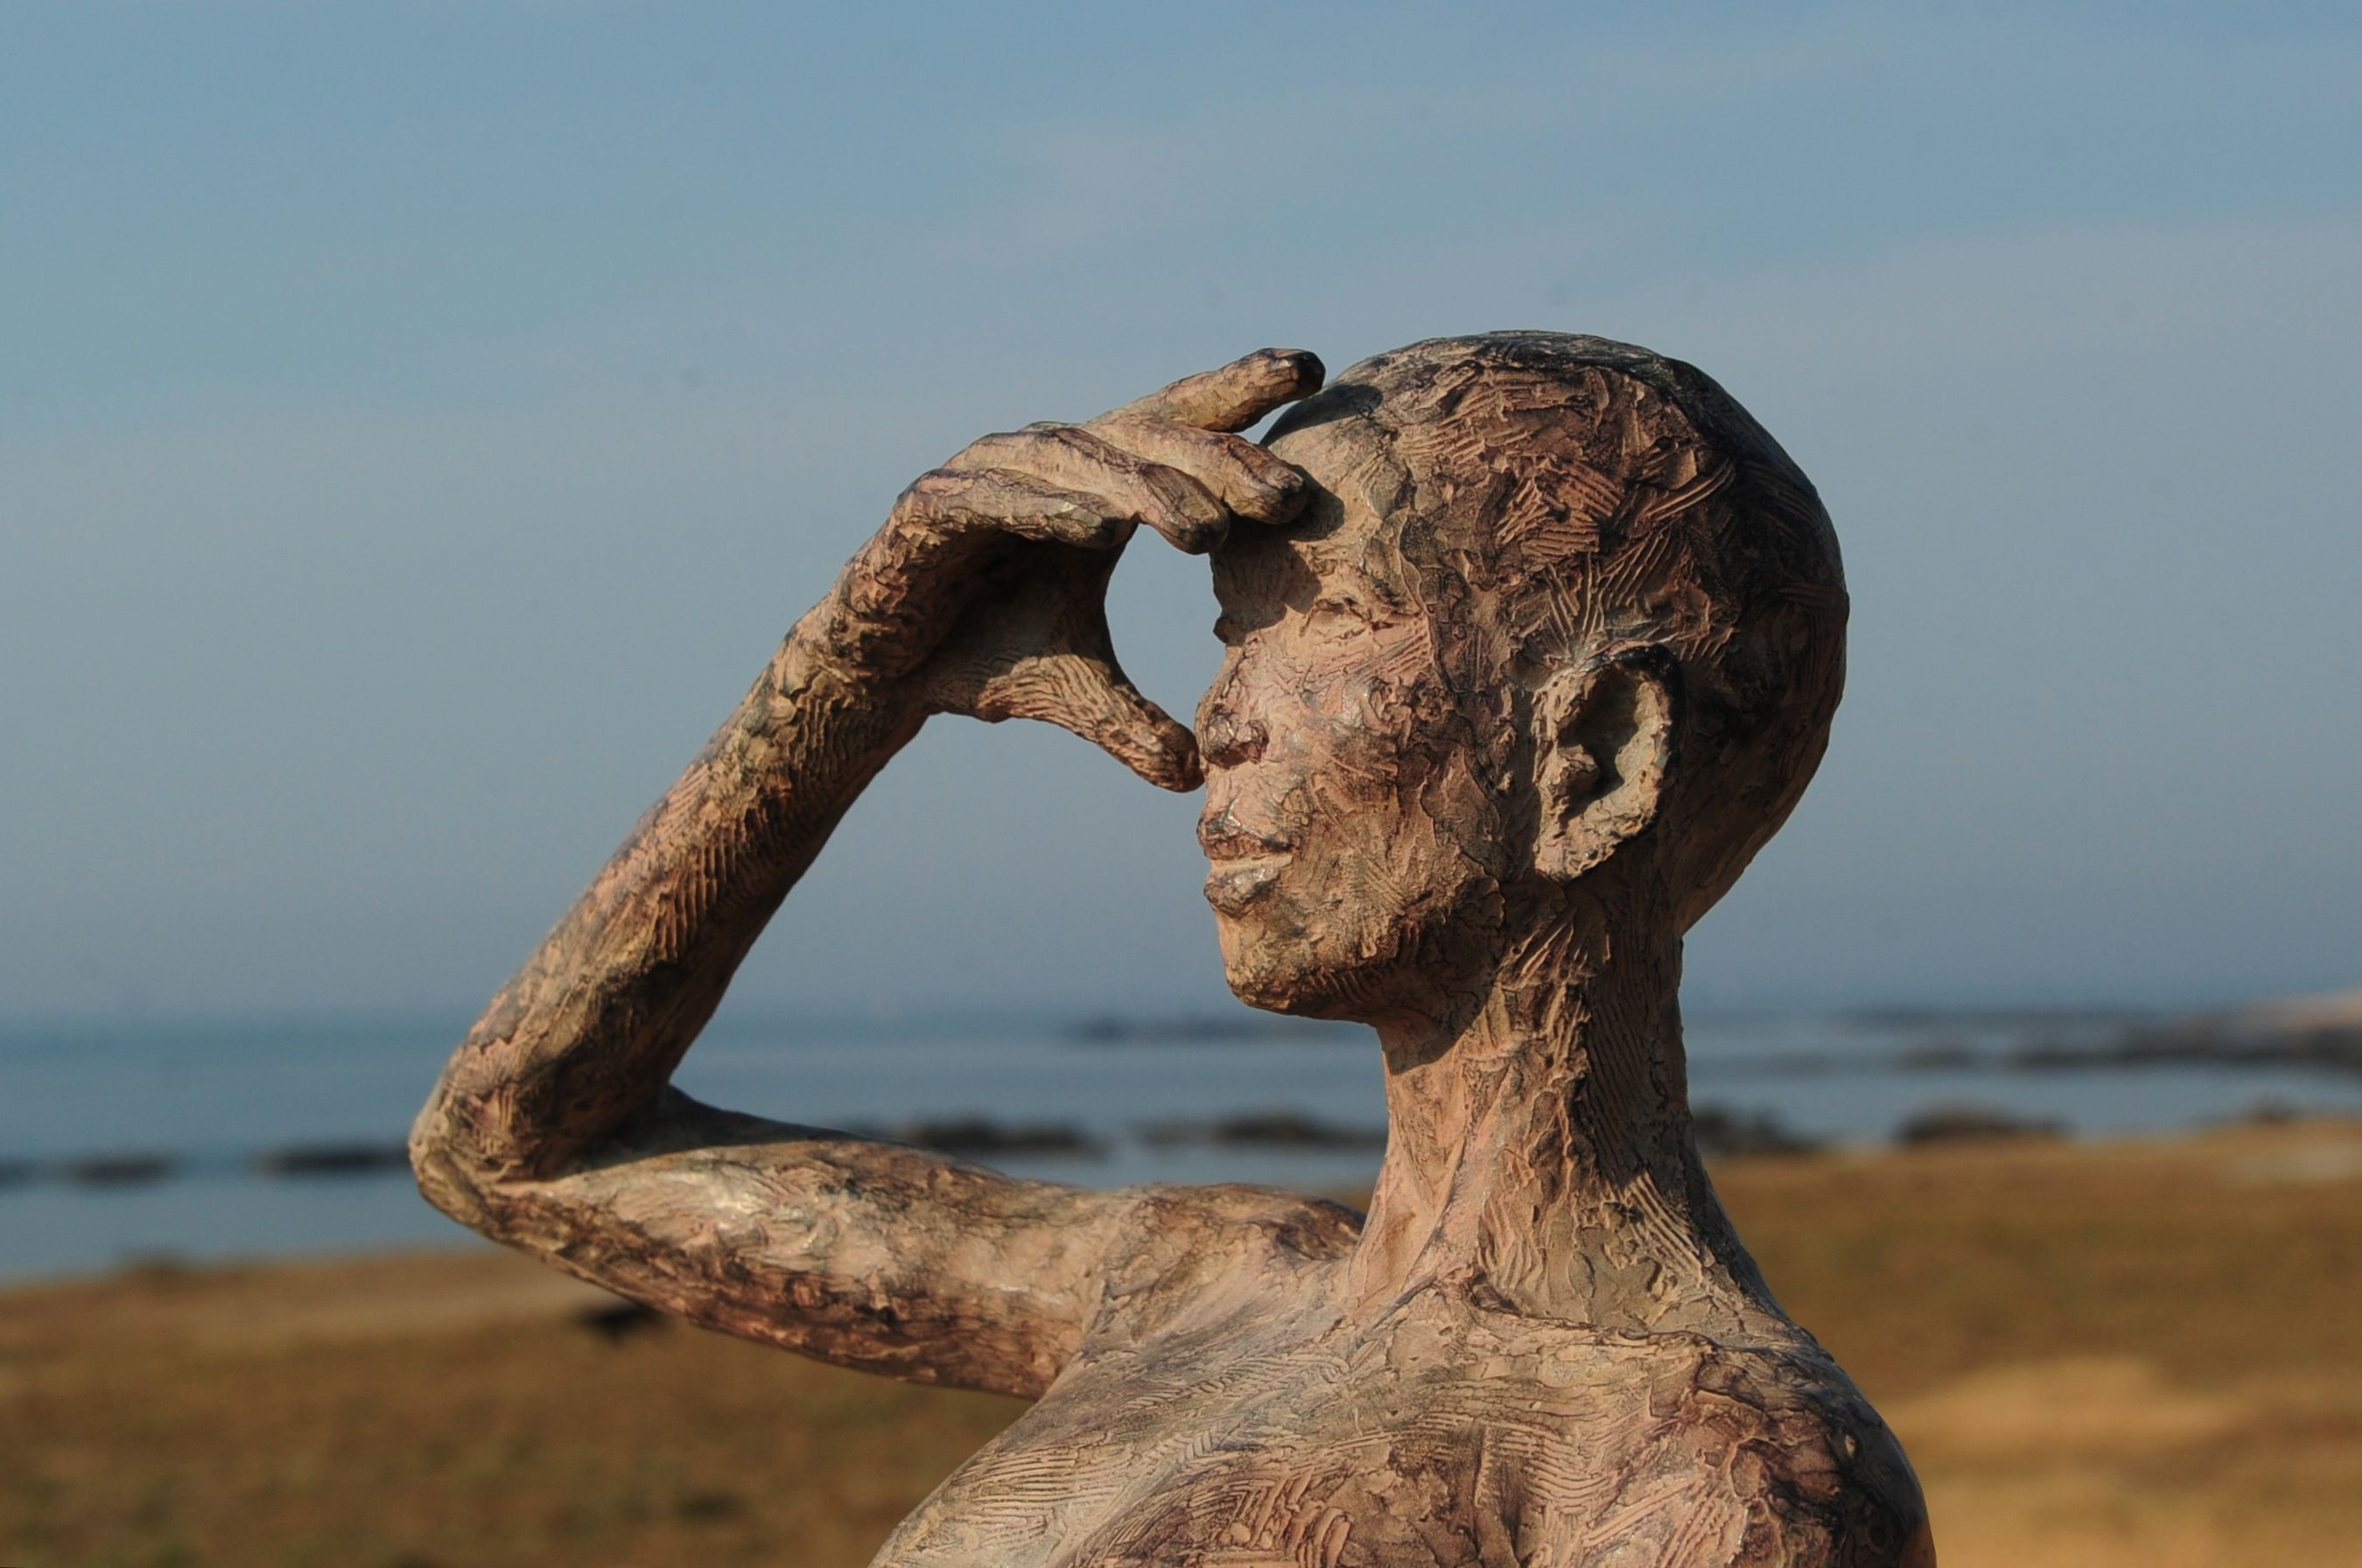 L'Attente,Marine de Soos,Sculpture contemporaine, detail 1